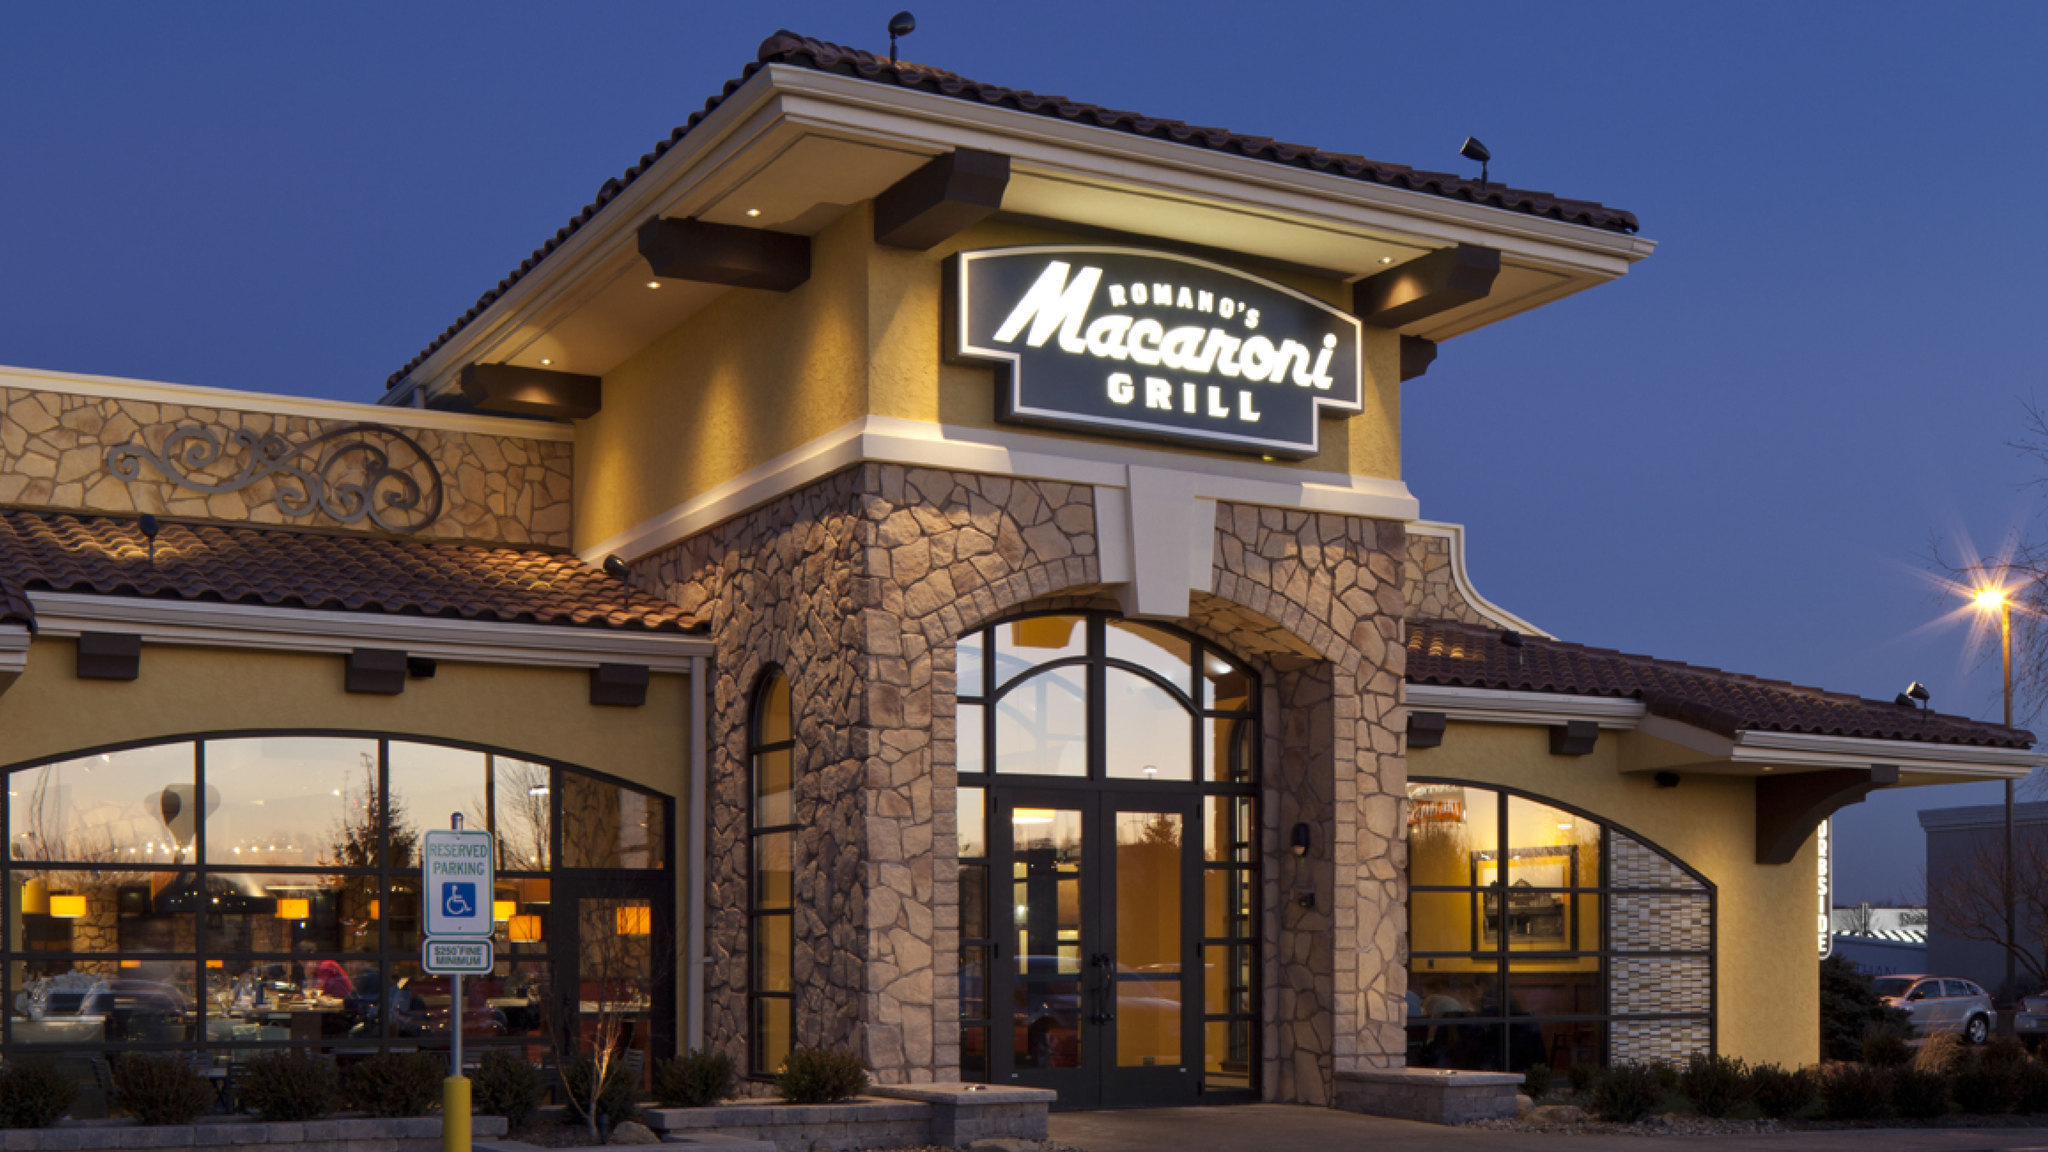 Macaroni Grill getting kicked out of Altamonte Springs building ...